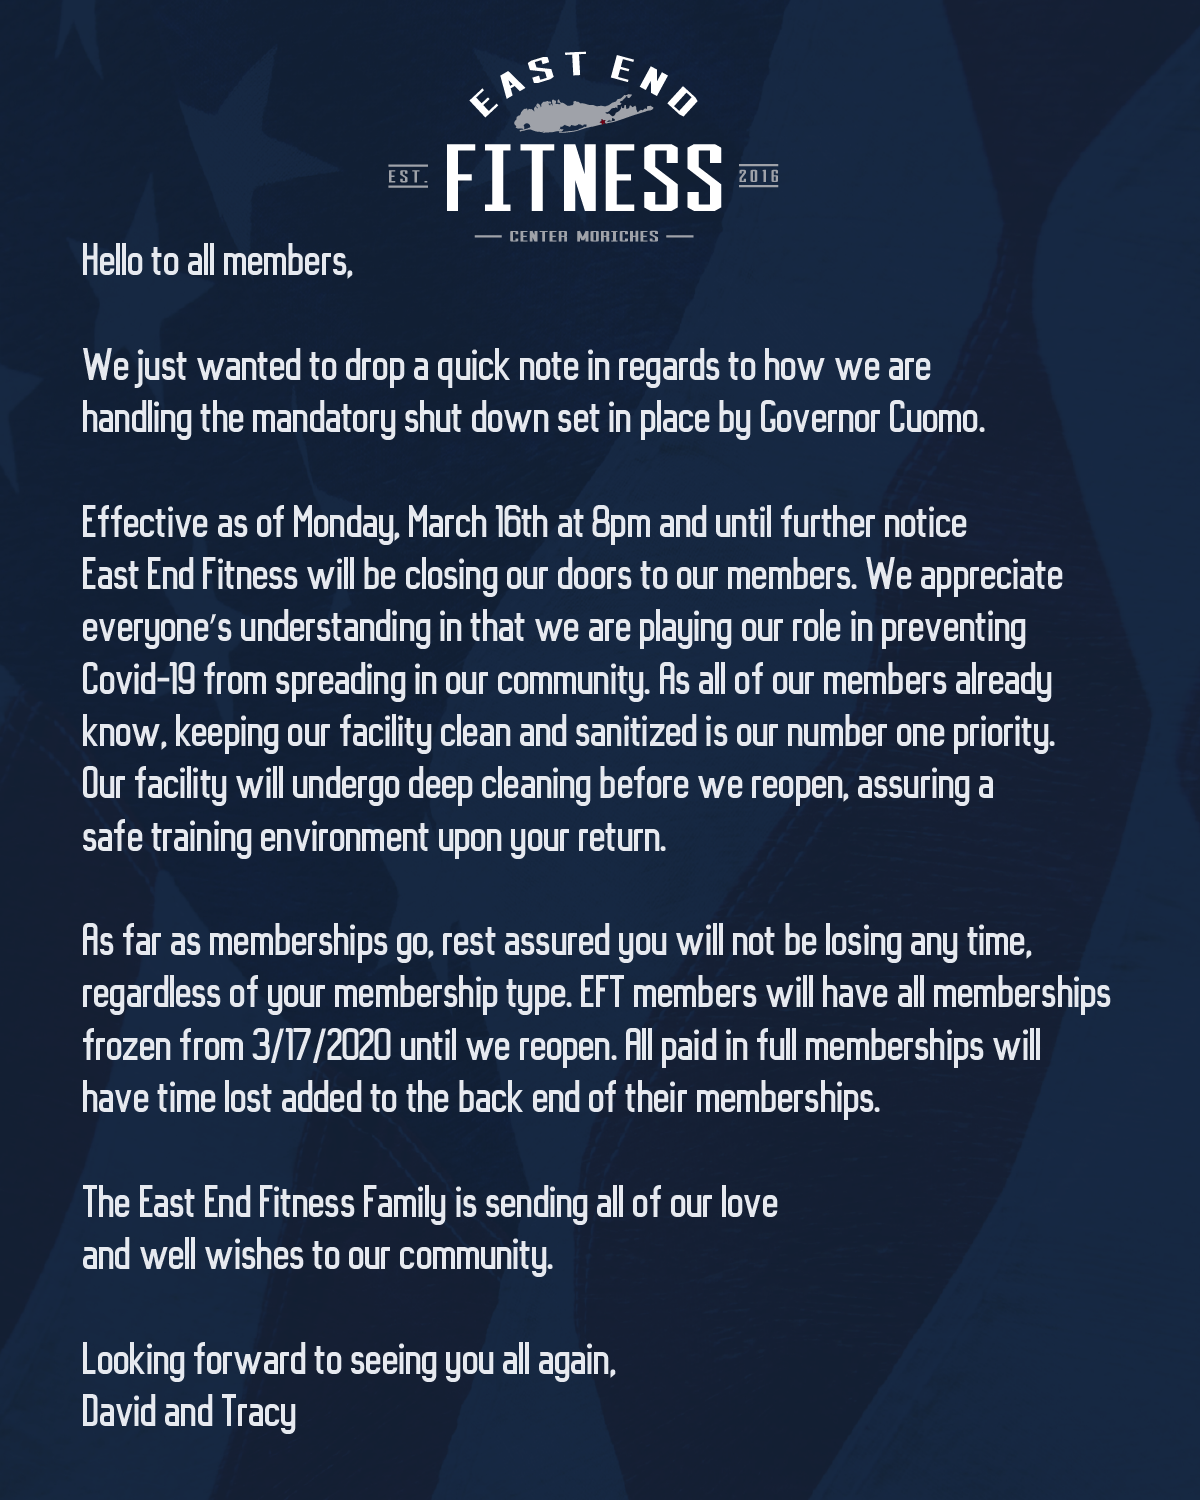 Flyer that reads: Hello to all members, We just wanted to drop a quick note in regards to how we are handling the mandatory shut down set in place by Governor Cuomo. Effective as of Monday, March 16th at 8pm and until further notice East End Fitness will be closing our doors to our members. We appreciate everyone's understanding in that we are playing our role in preventing Covid-19 from spreading in our community. As all of our members already know, keeping our facility clean and sanitized is our number one priority. Our facility will undergo deep cleaning before we reopen, assuring a safe training environment upon your return. As far as memberships go, rest assured you will not be losing any time, regardless of your membership type. EFT members will have all memberships frozen from 3/17/2020 until we reopen. All paid in full memberships will have time lost added to the back end of their memberships. The East End Fitness Family is sending all of our love and well wishes to our community. Looking forward to seeing you all again, David and Tracy